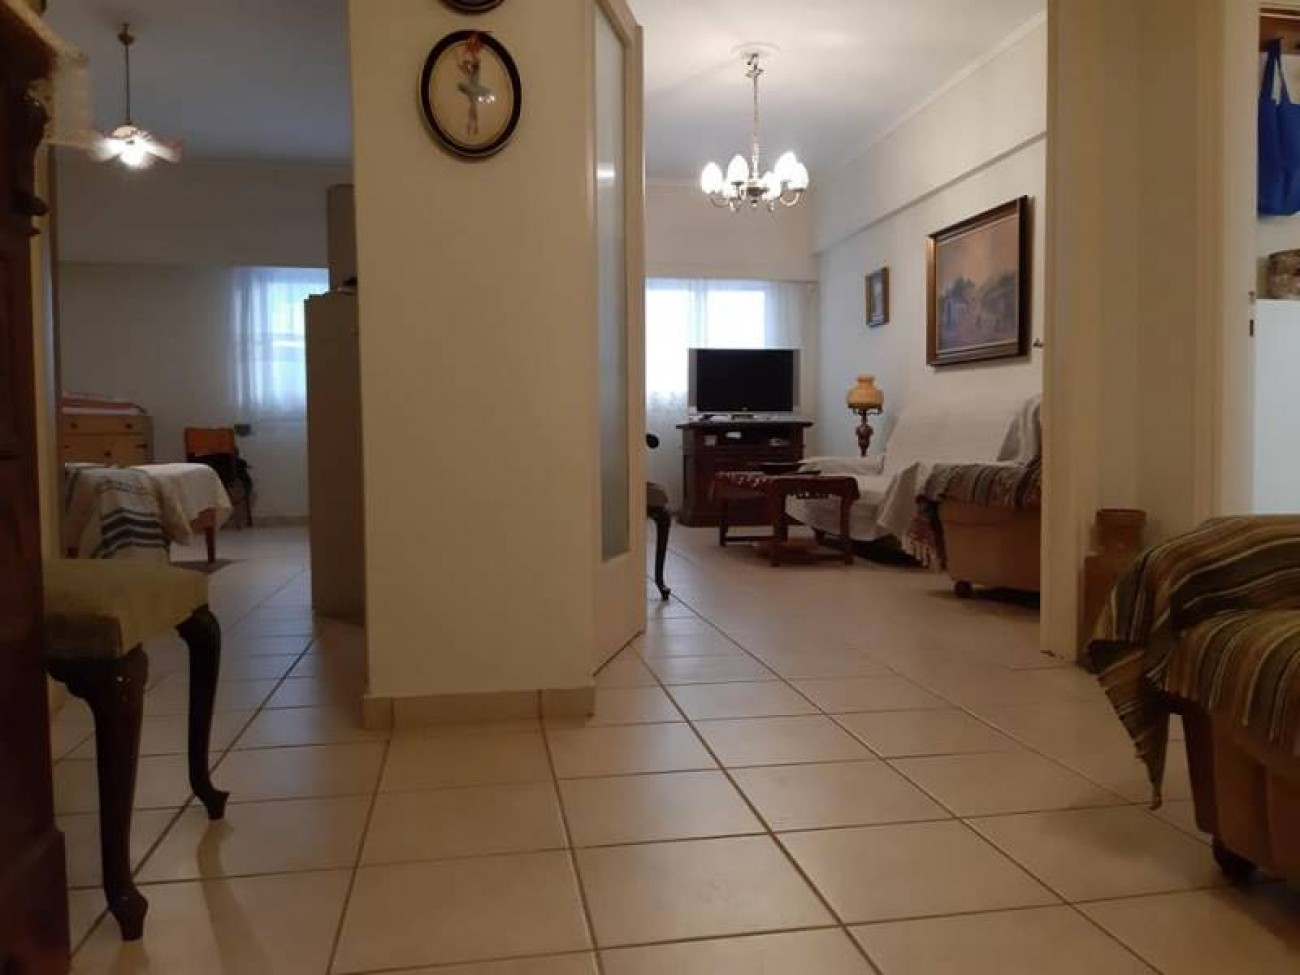 Apartment for Sale in Central & Southern Suburbs, Attica